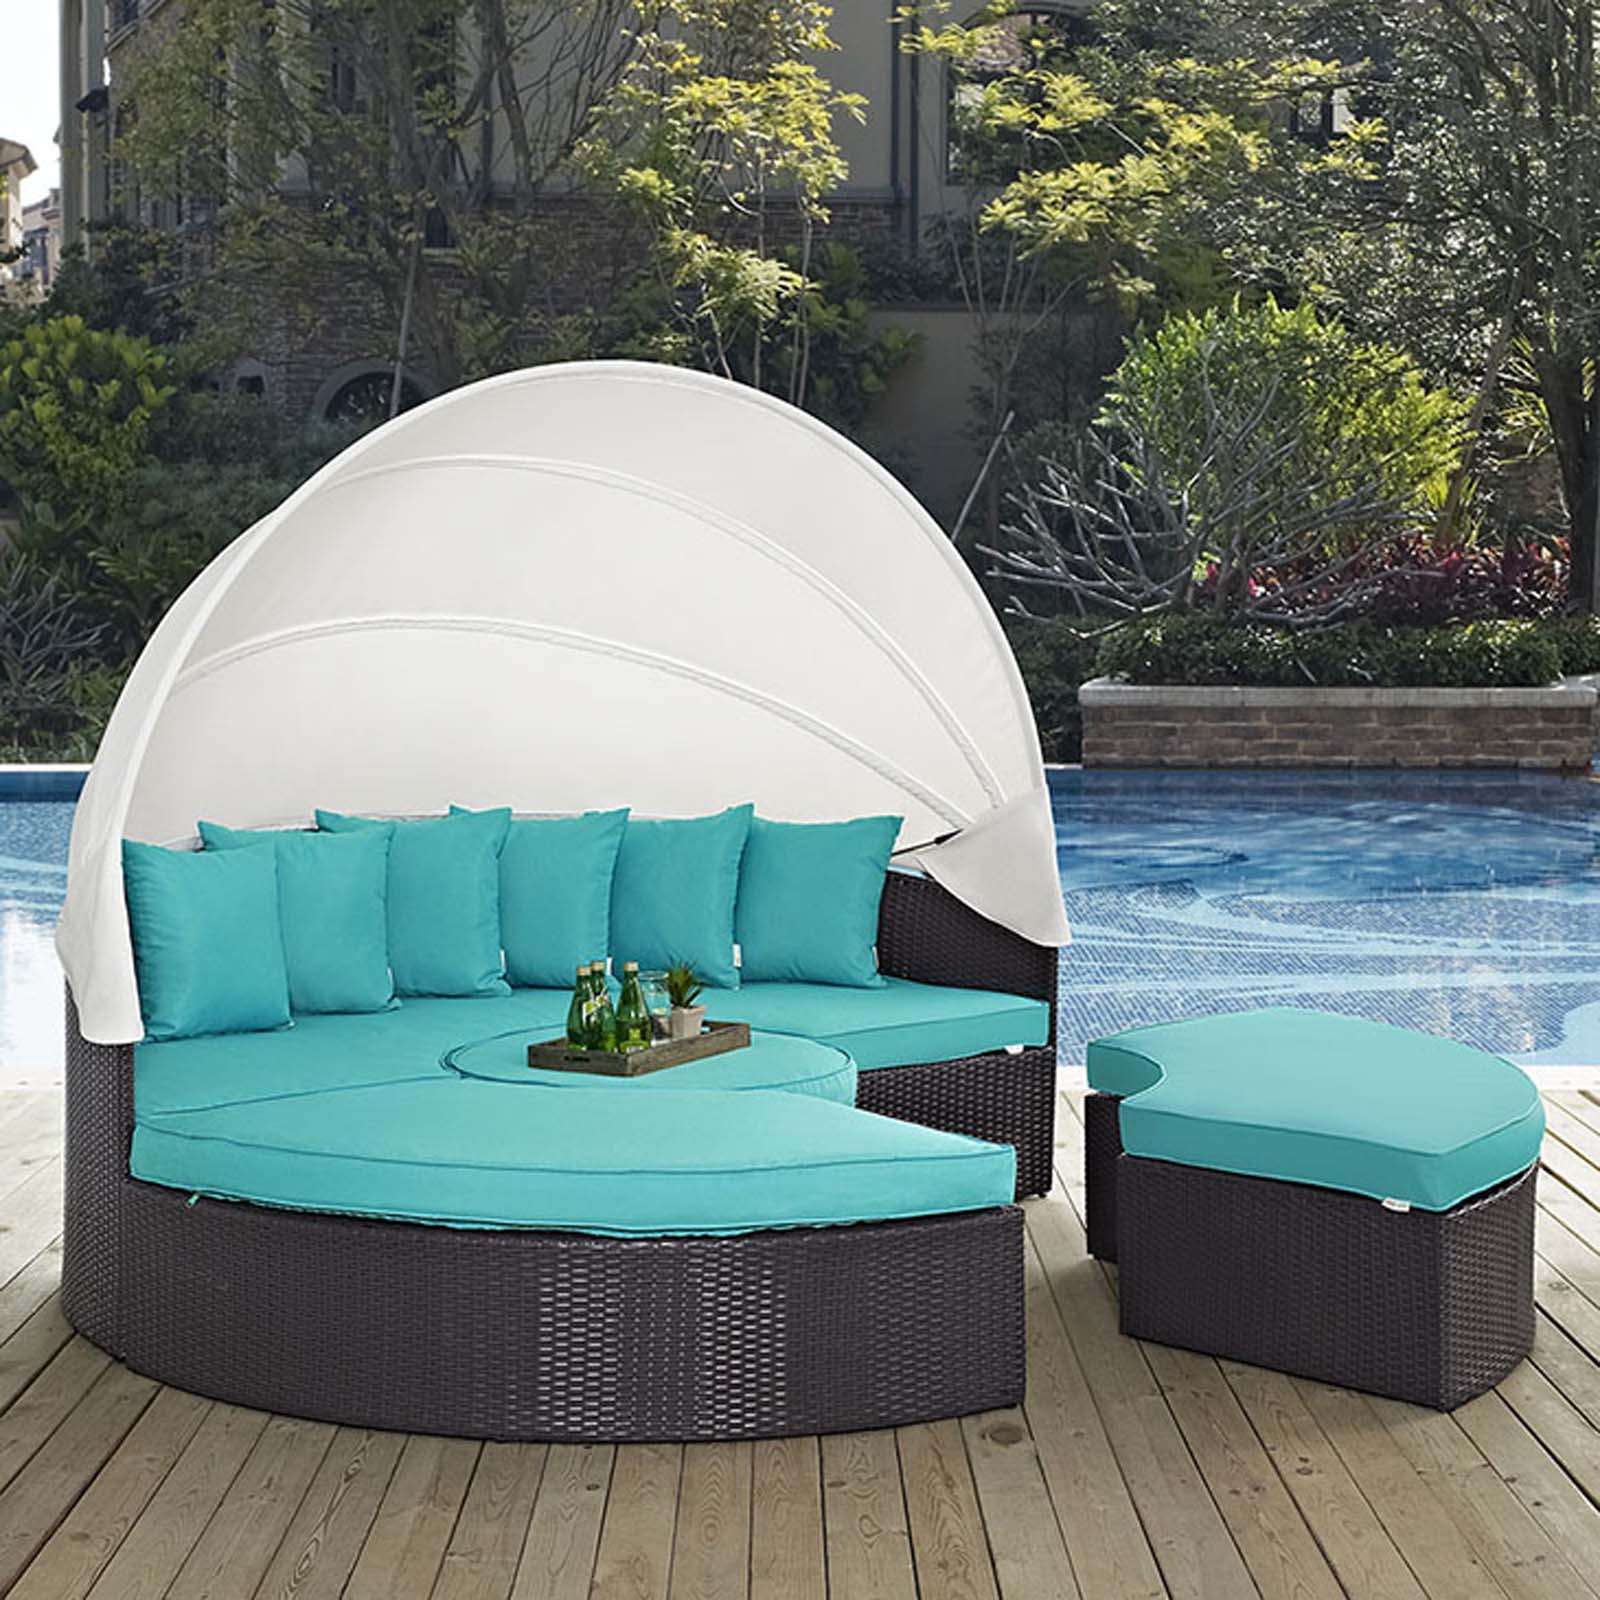 Modterior Outdoor Daybeds Convene Canopy Outdoor